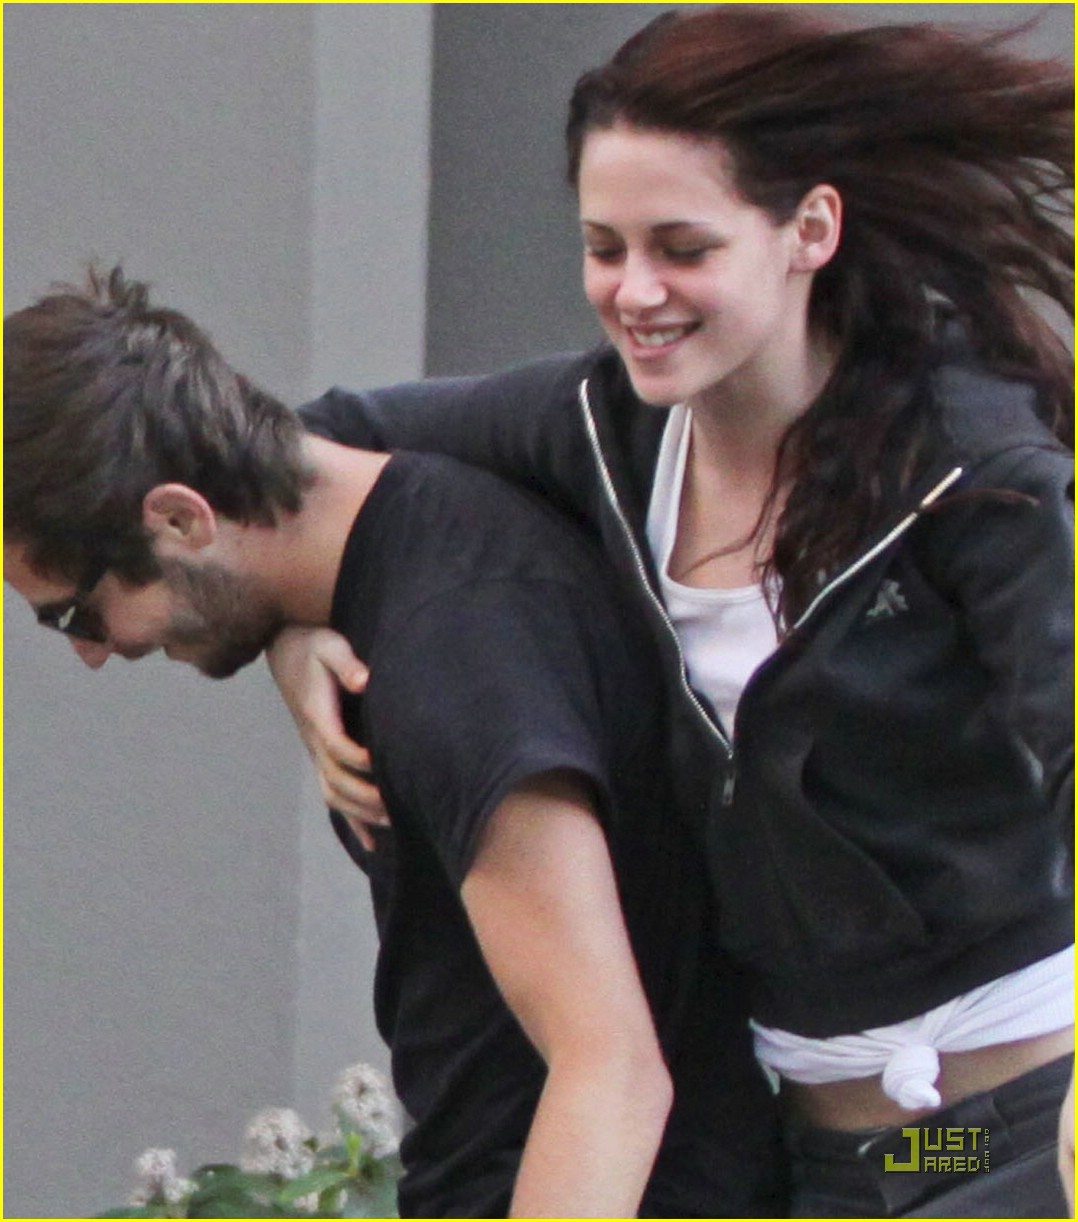 Kristen Stewart And Michael Angarano Kissing | www ...